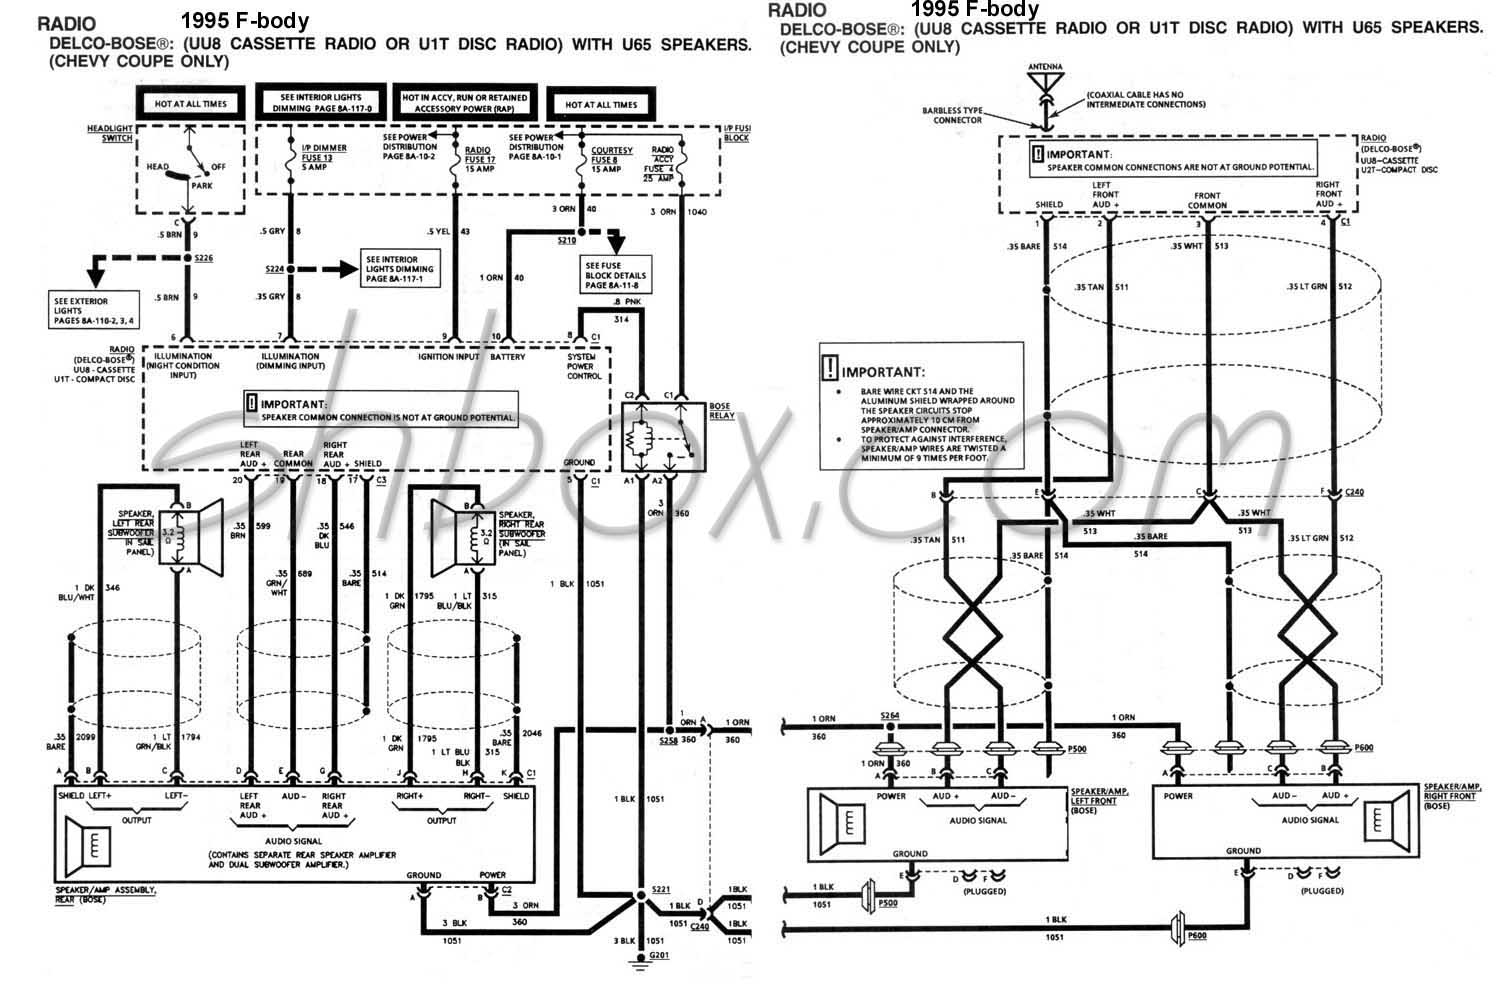 bose_wiring 4th gen lt1 f body tech aids 1995 camaro stereo wiring diagram at virtualis.co